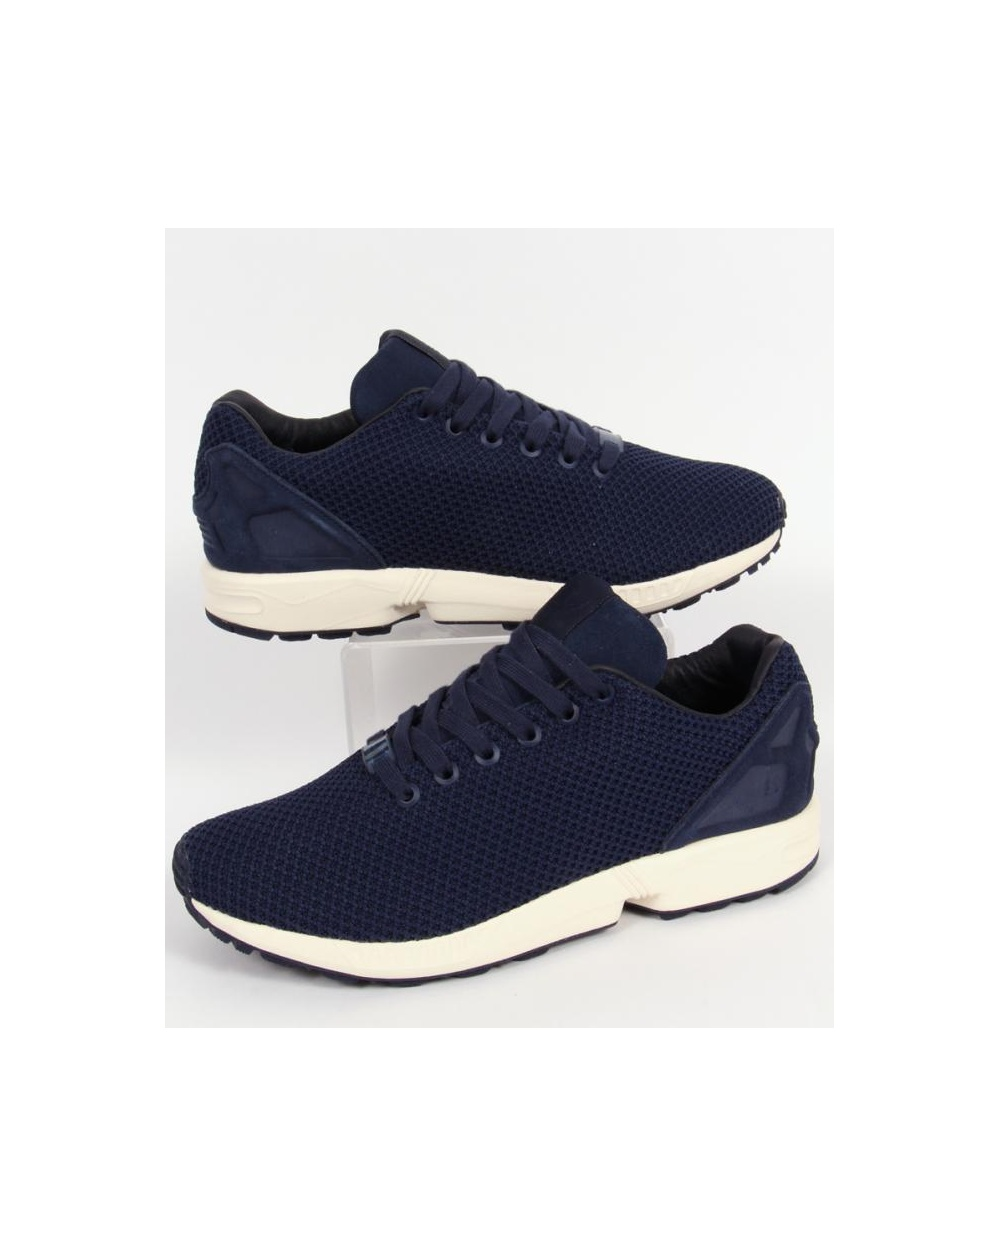 brand new 7c58a 19f04 Adidas Zx Flux Trainers Navy